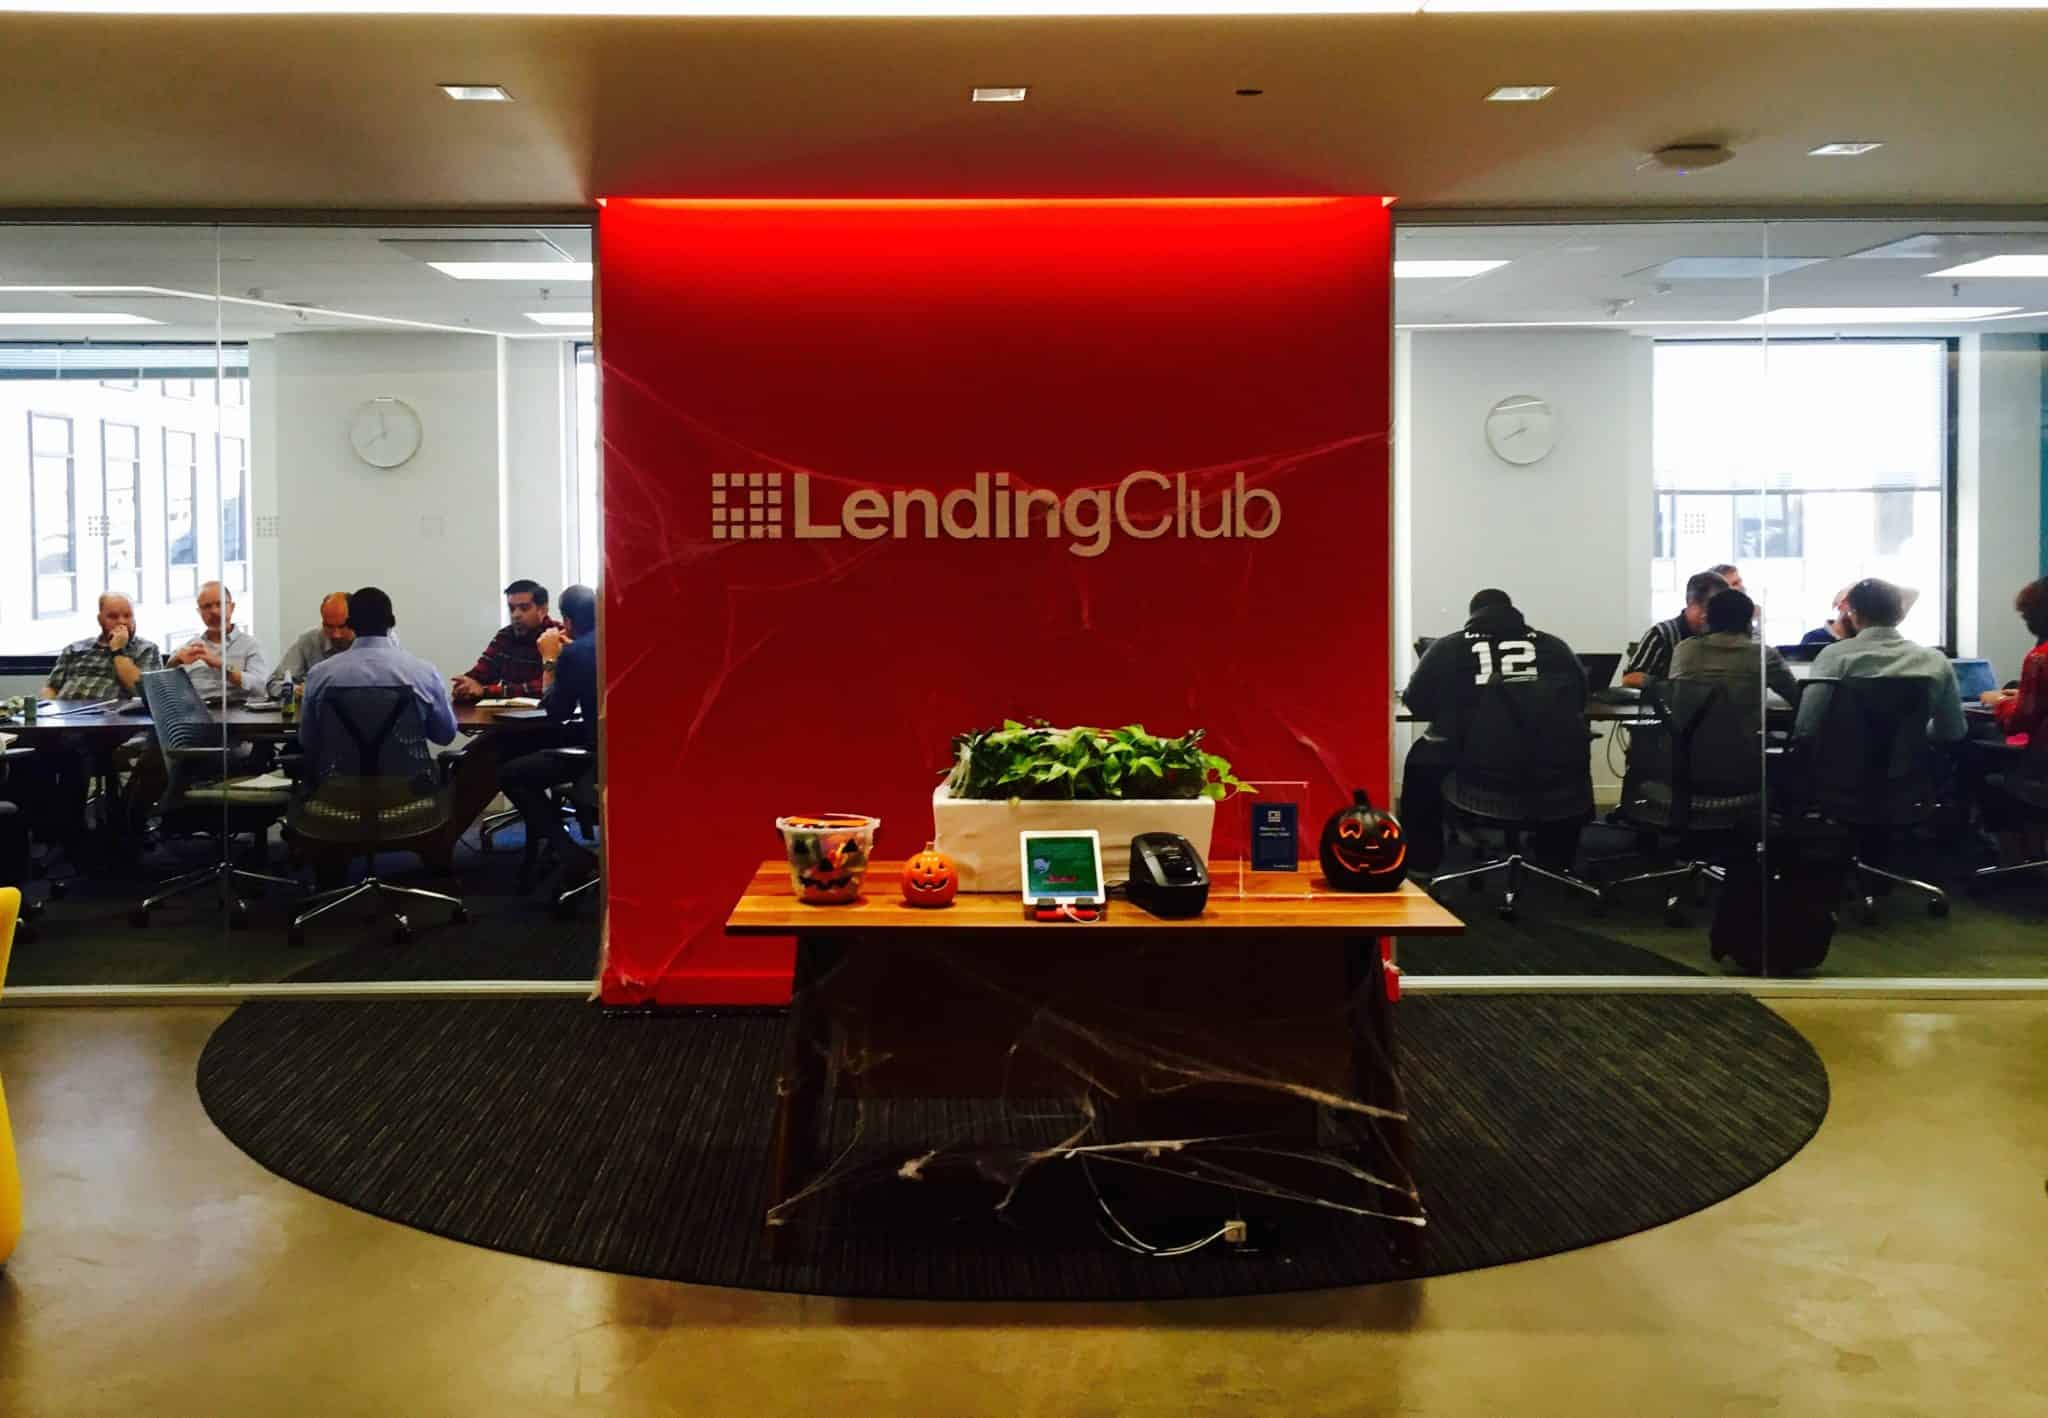 Growing Up: Lending Club Has Been Tested, Survived & is Getting Bigger